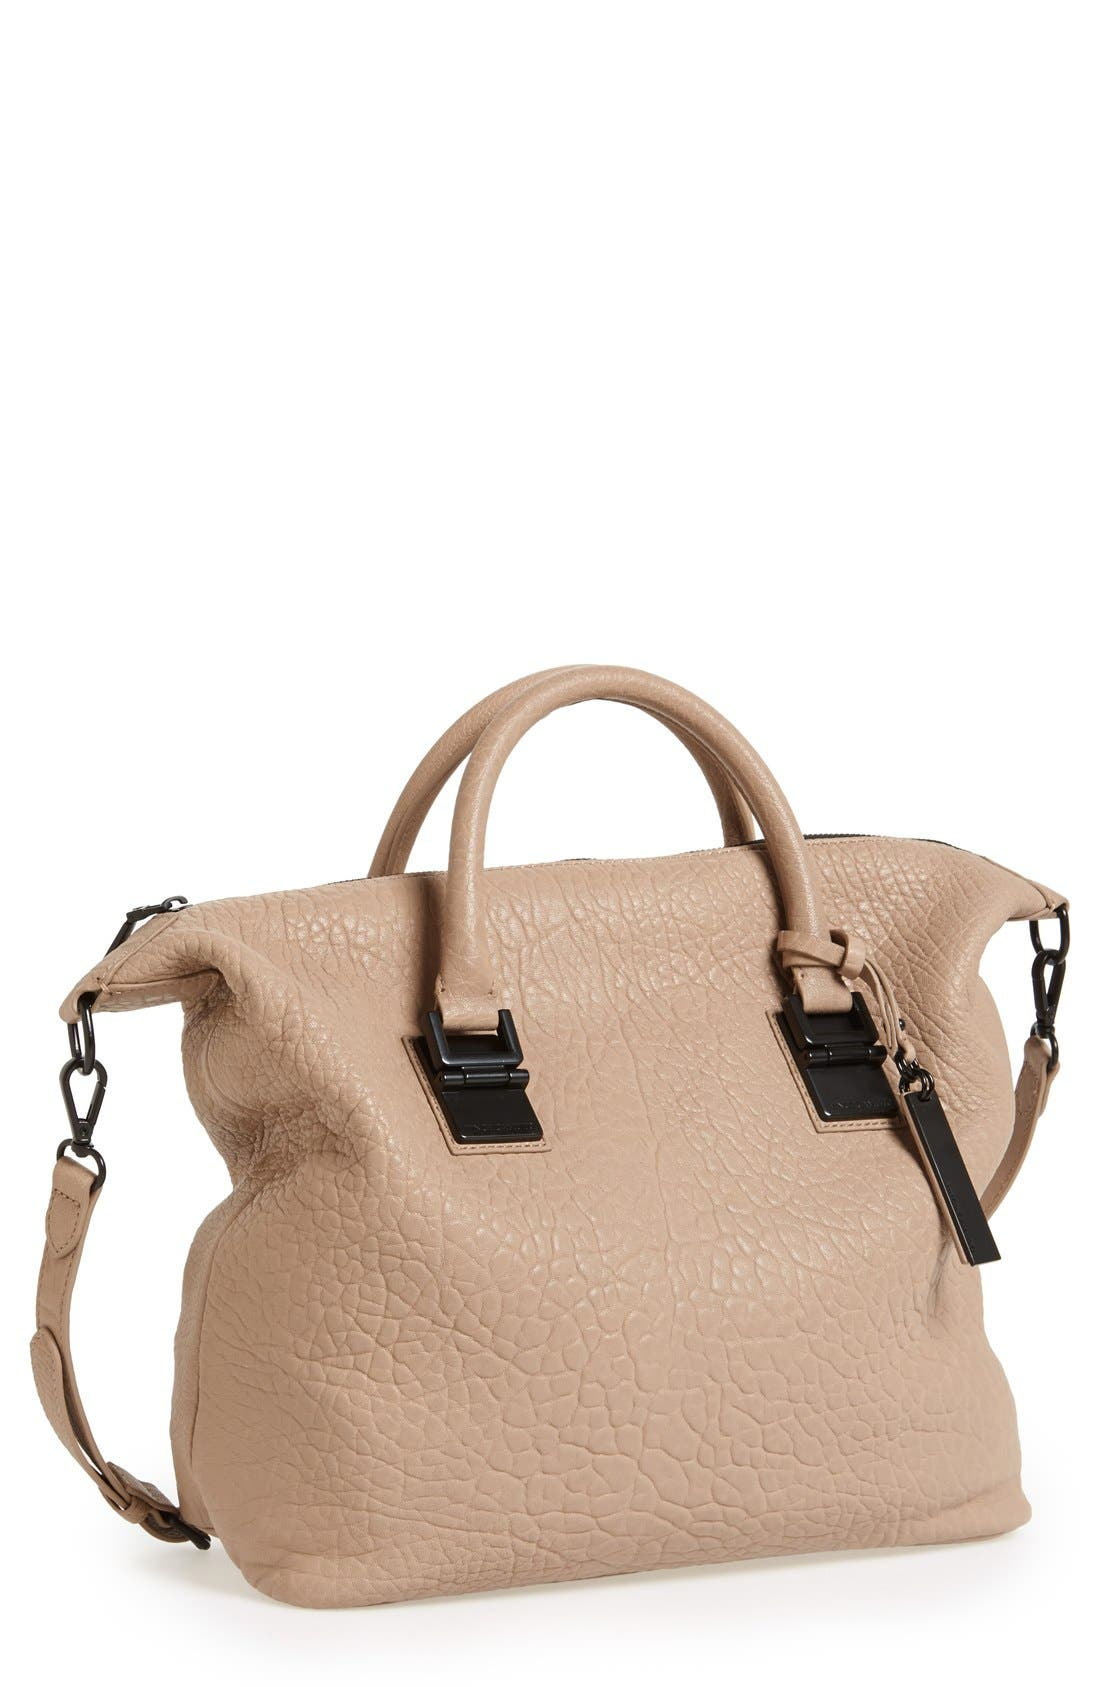 Main Image - Vince Camuto 'Sloan' Satchel